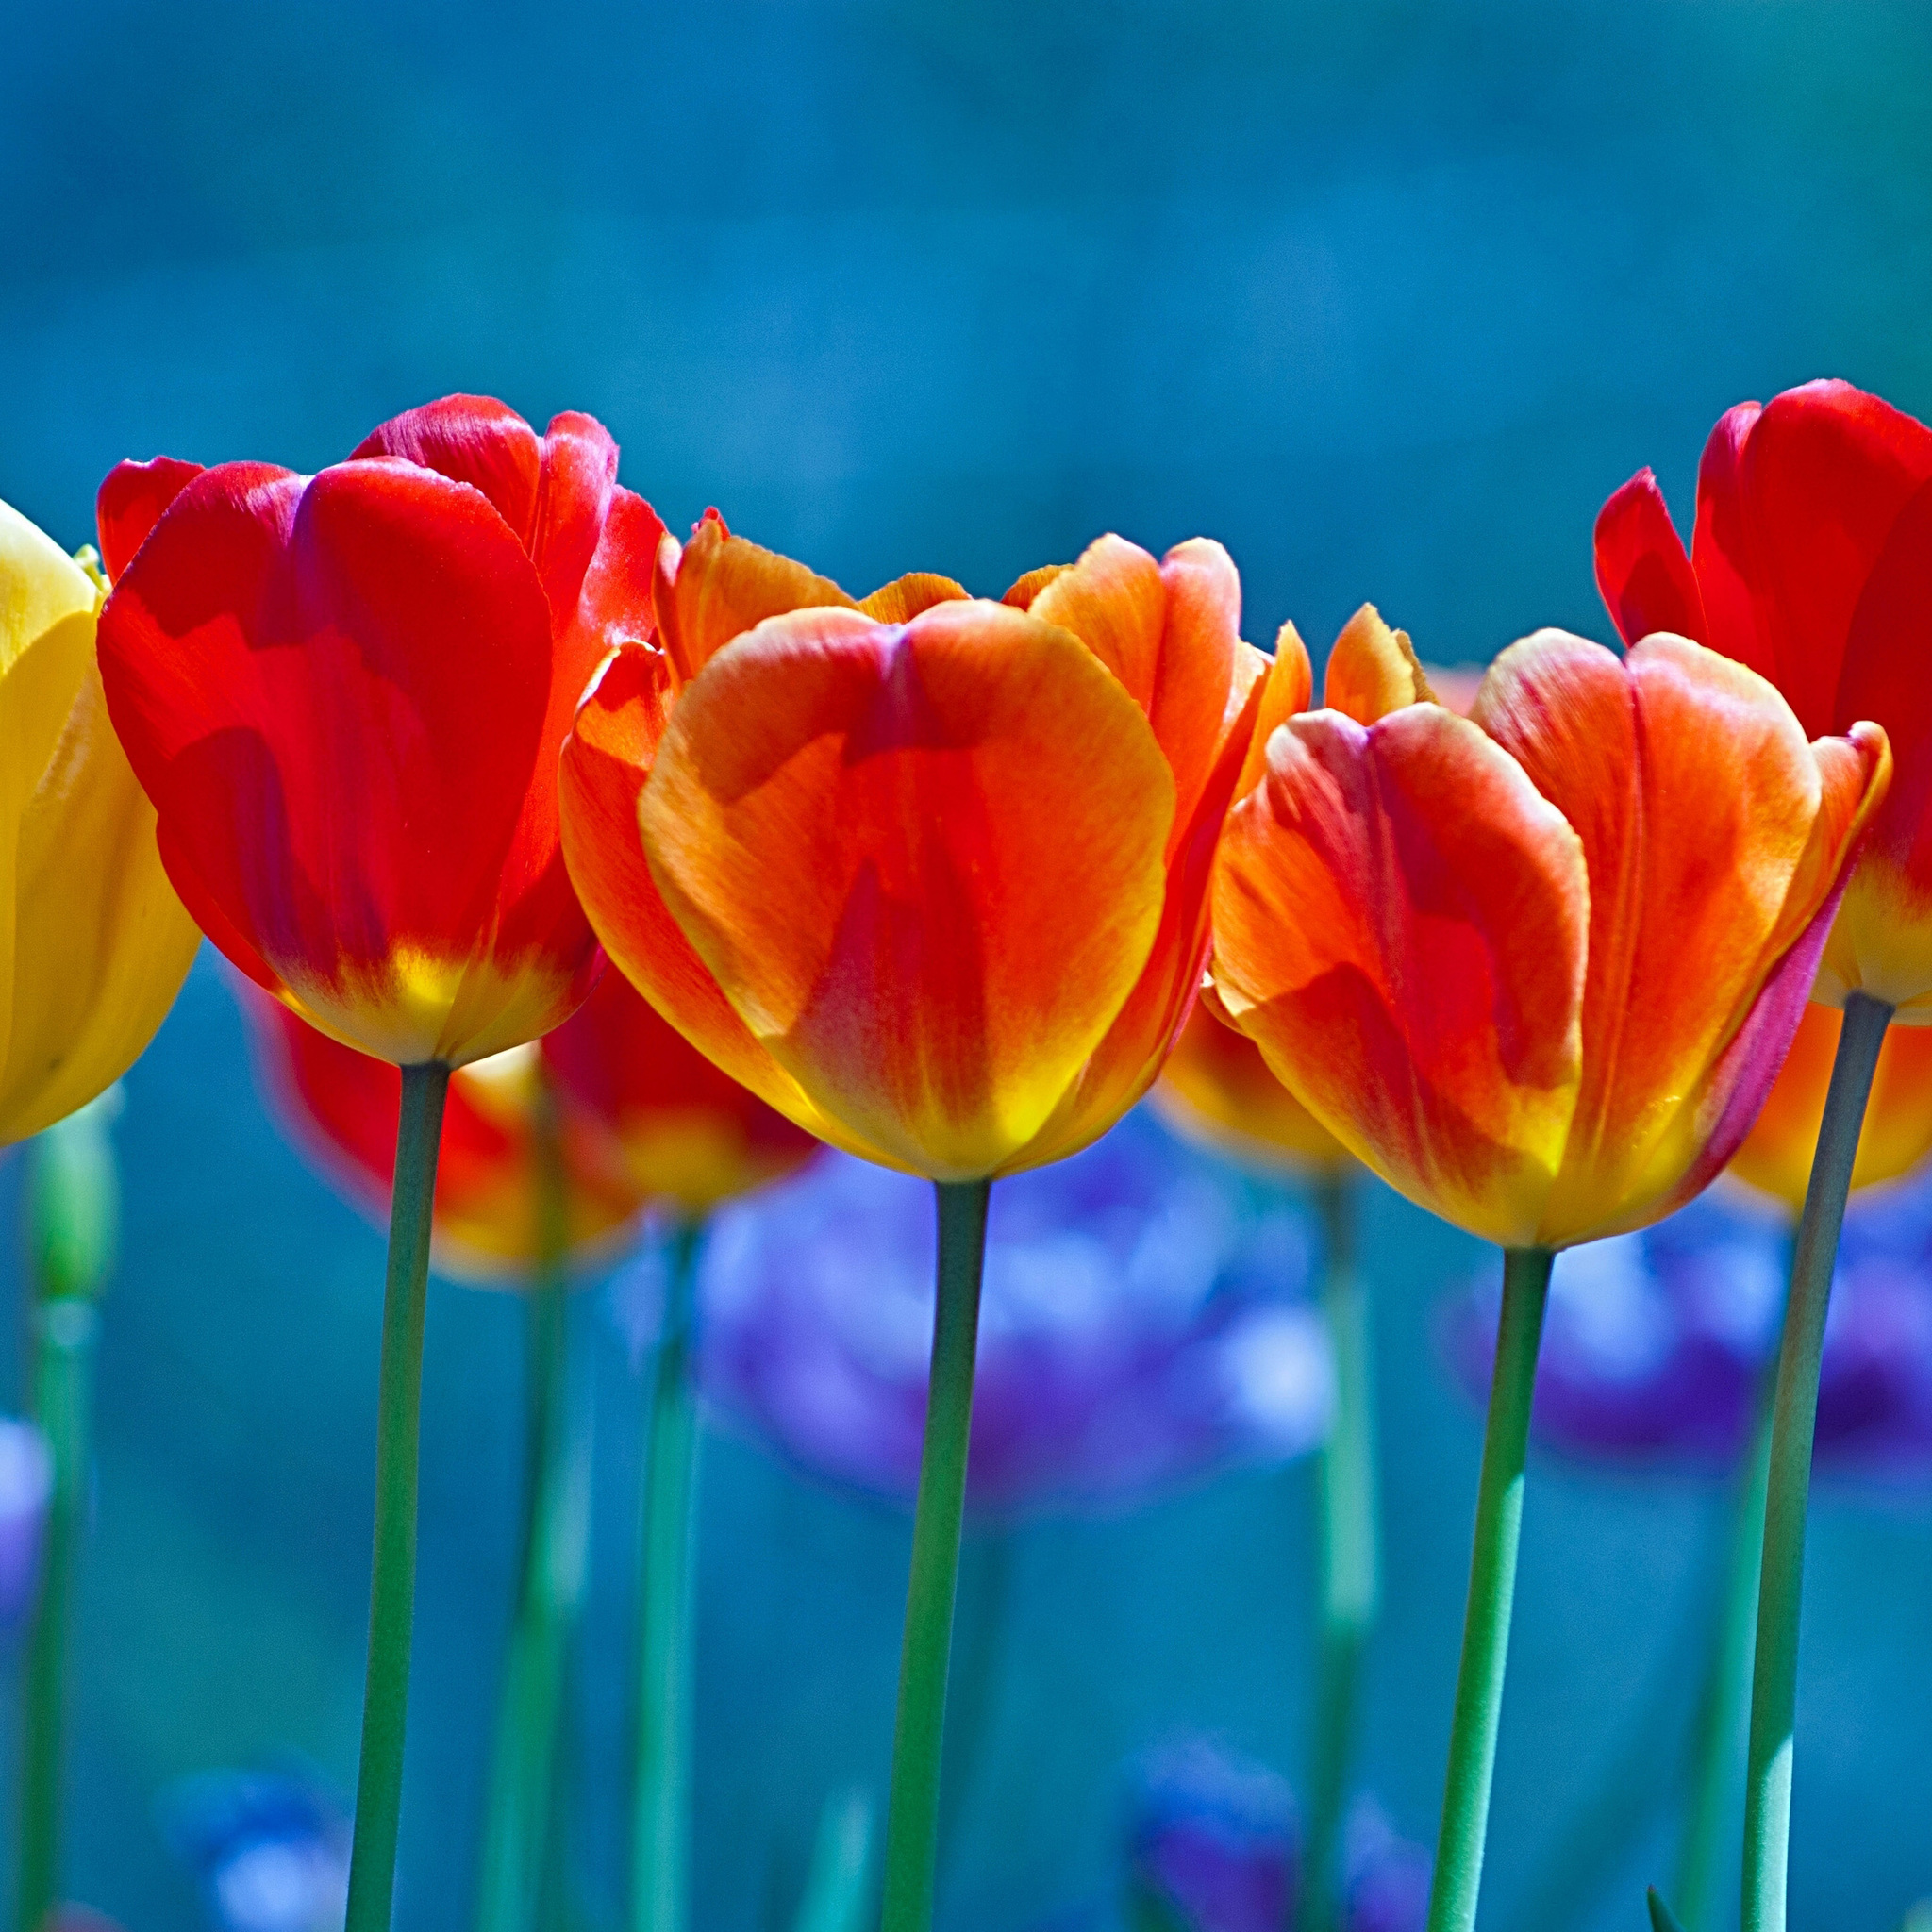 brightly-colored-tulips-mt.jpg